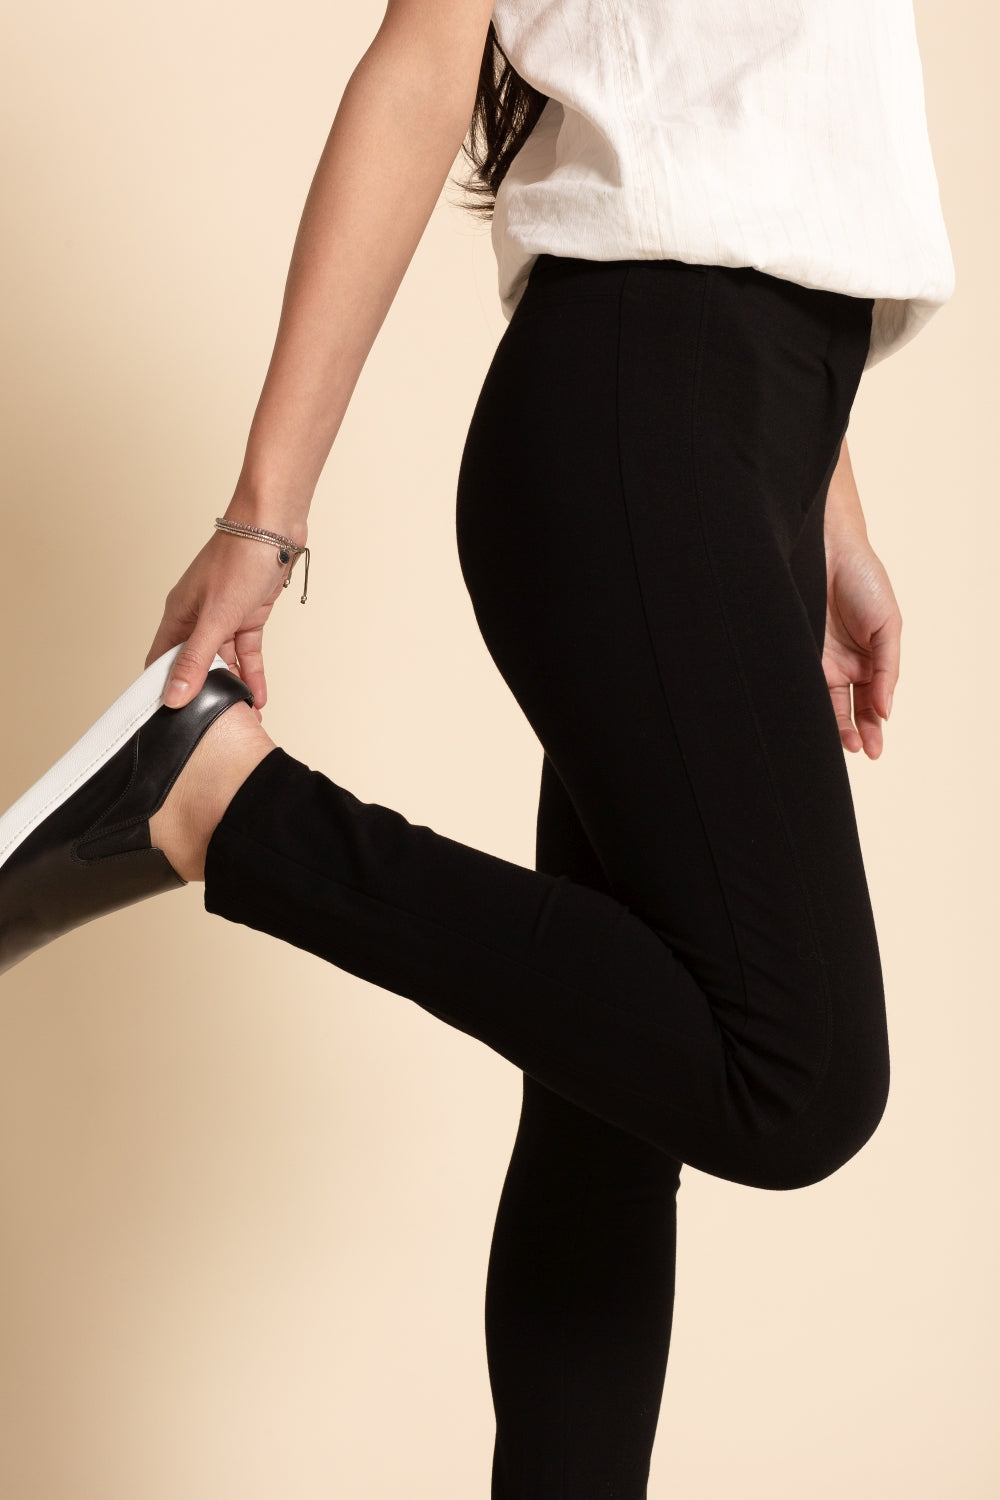 Hybrid Legging v2 - Black (Tall)